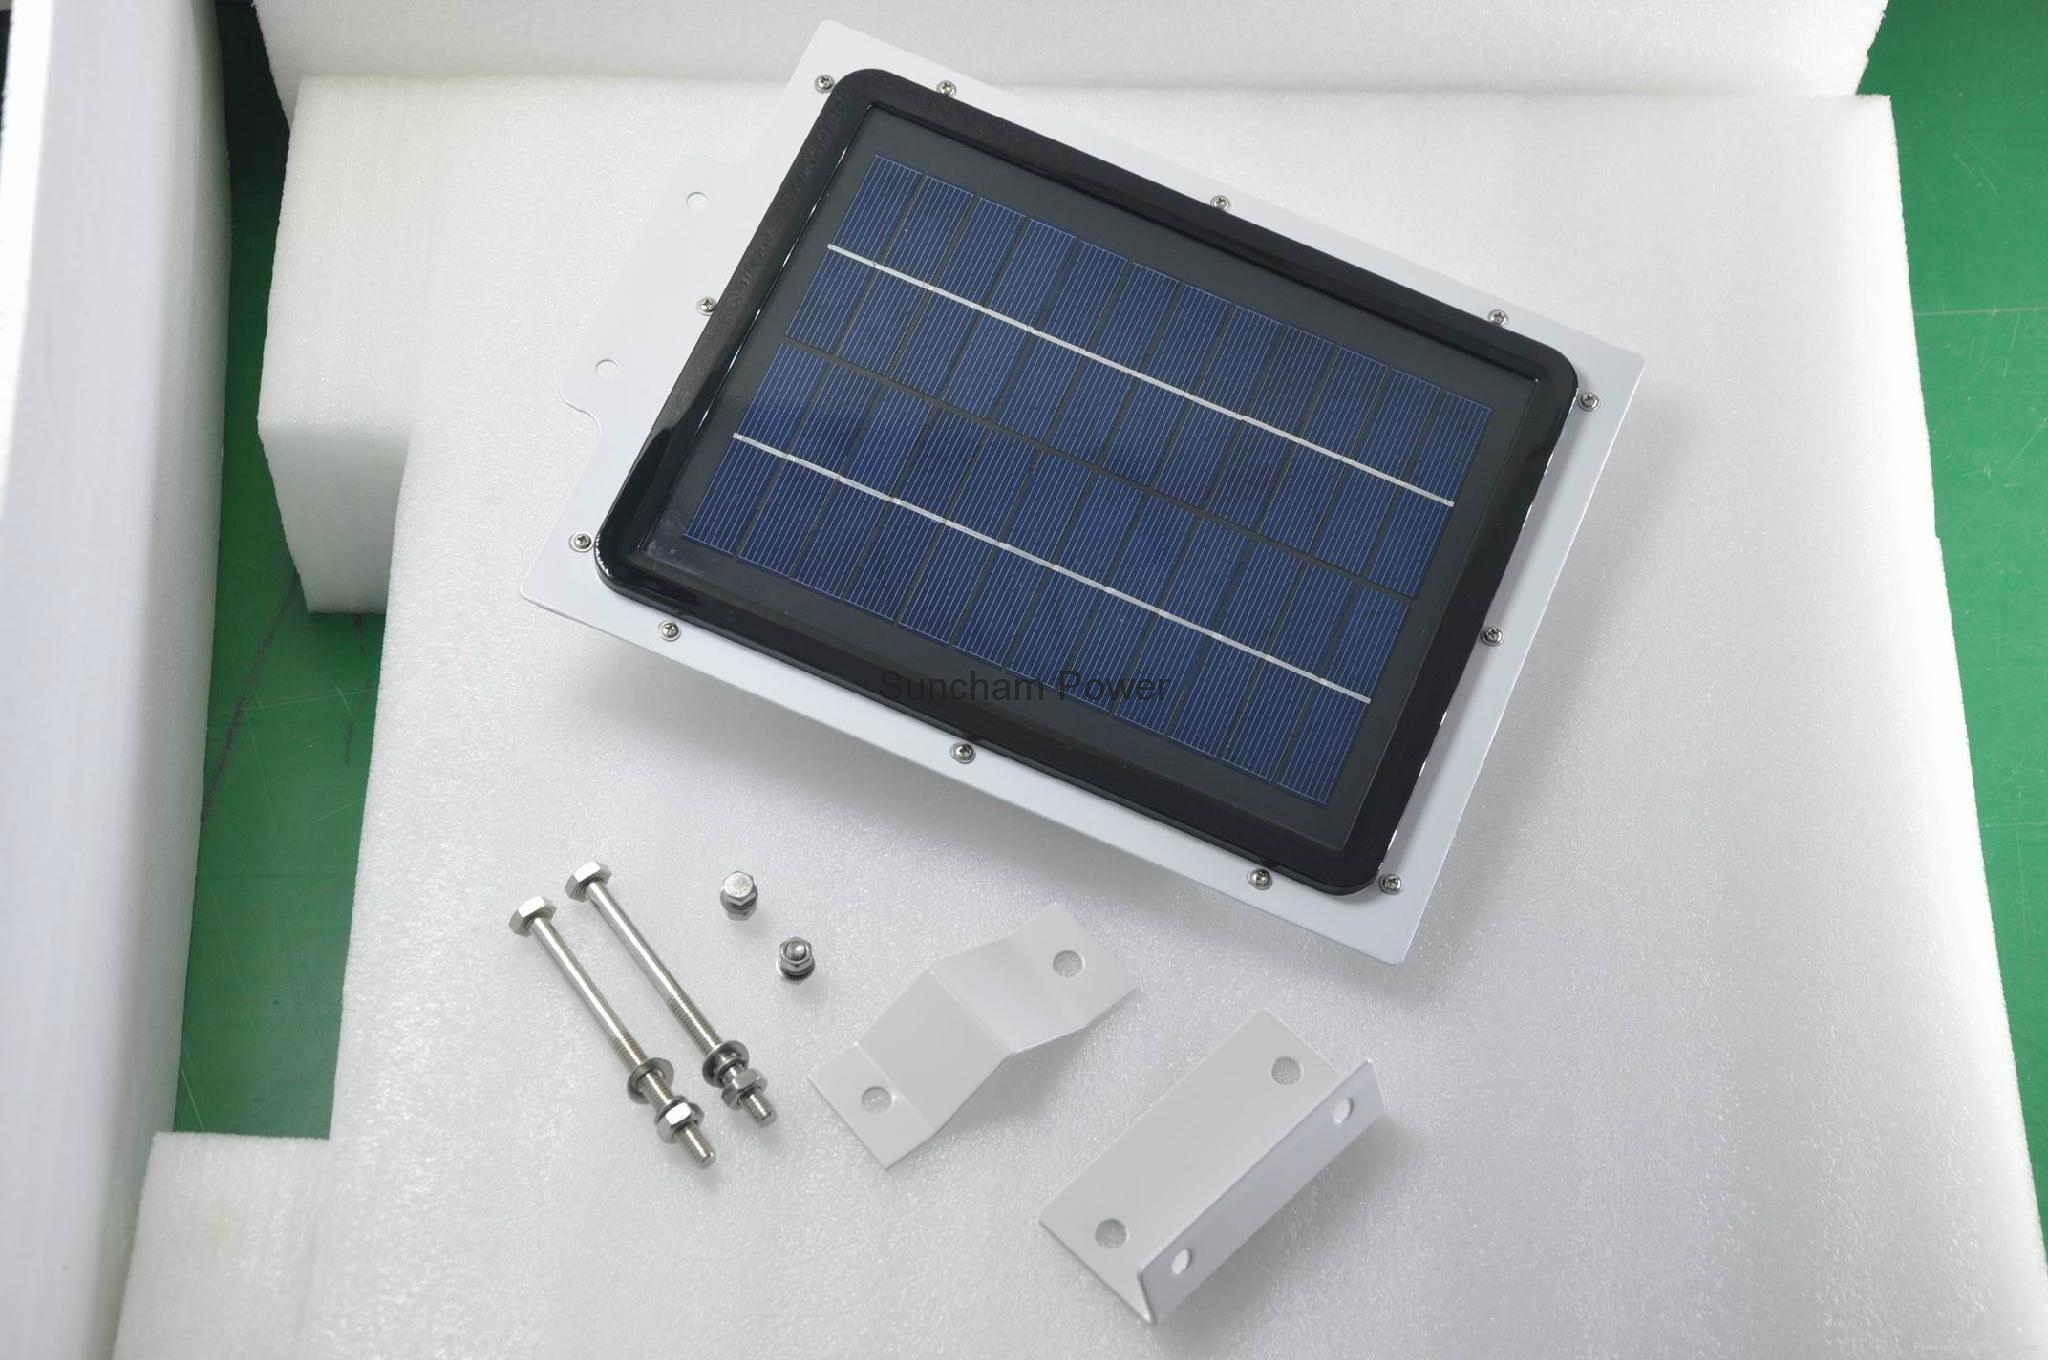 All-in-one solar light-SP602-112 4